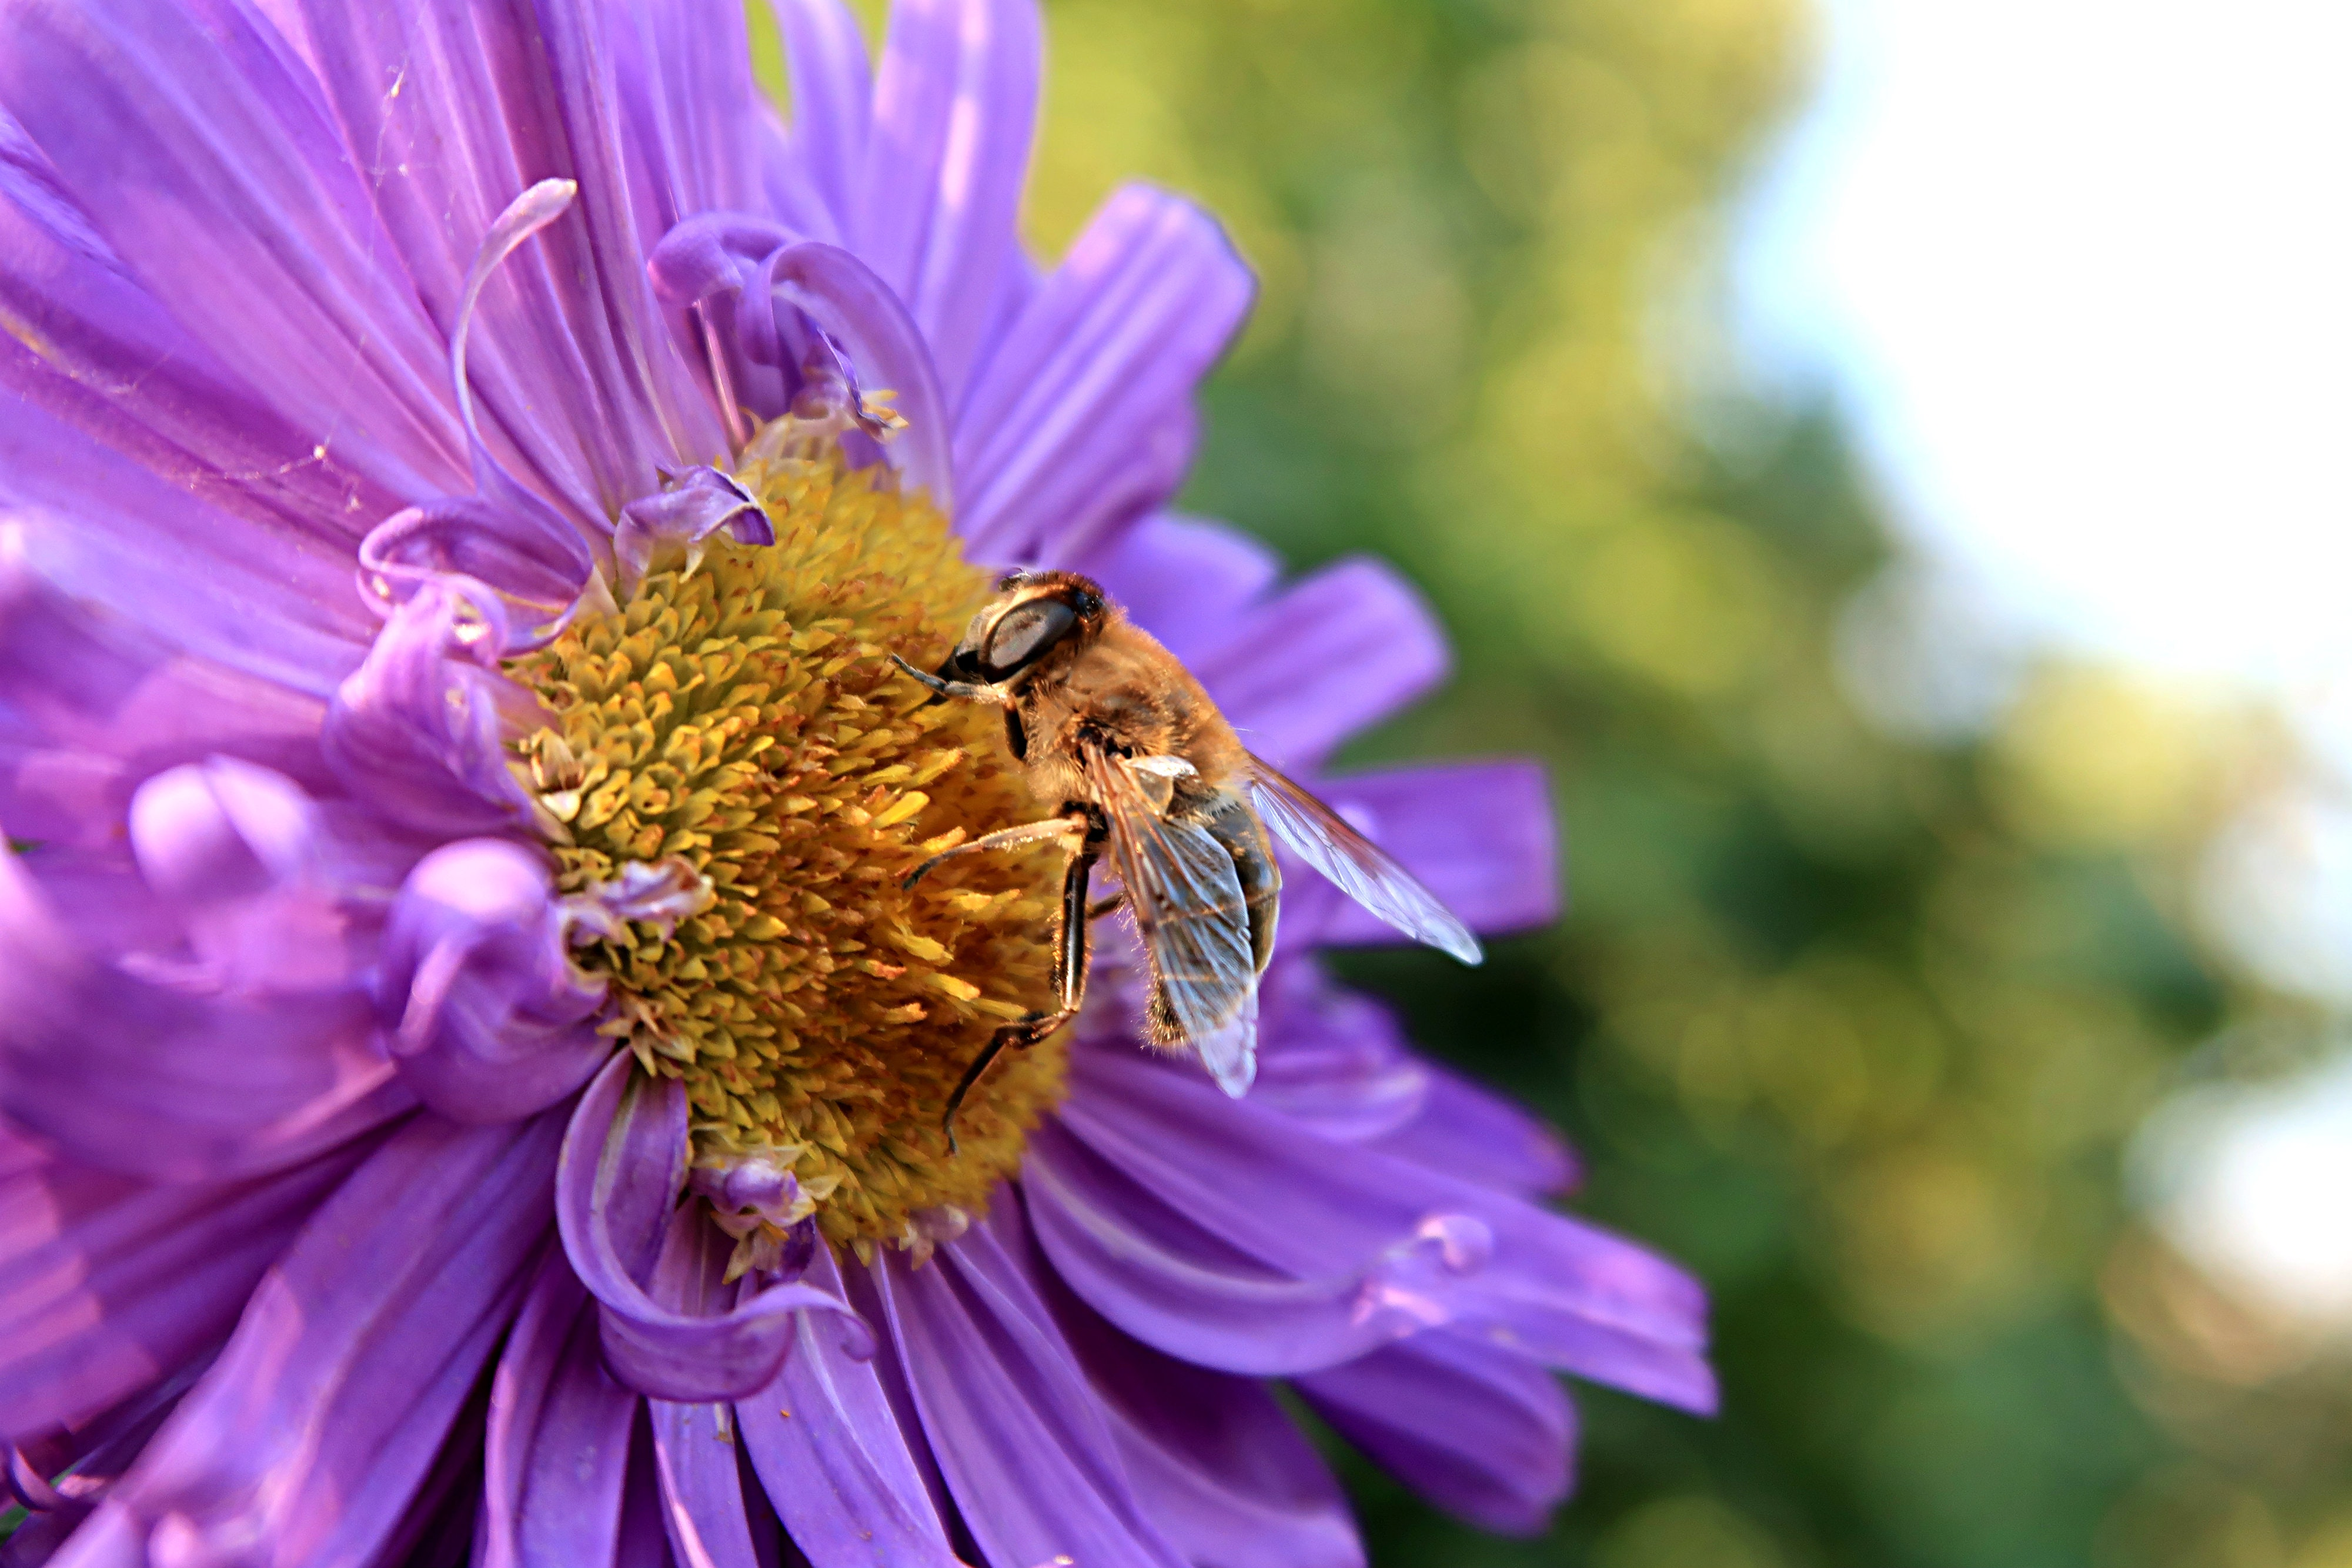 Macro Photography of Bee on a Flower, Animal, Insect, Wild animal, Vibrant, HQ Photo